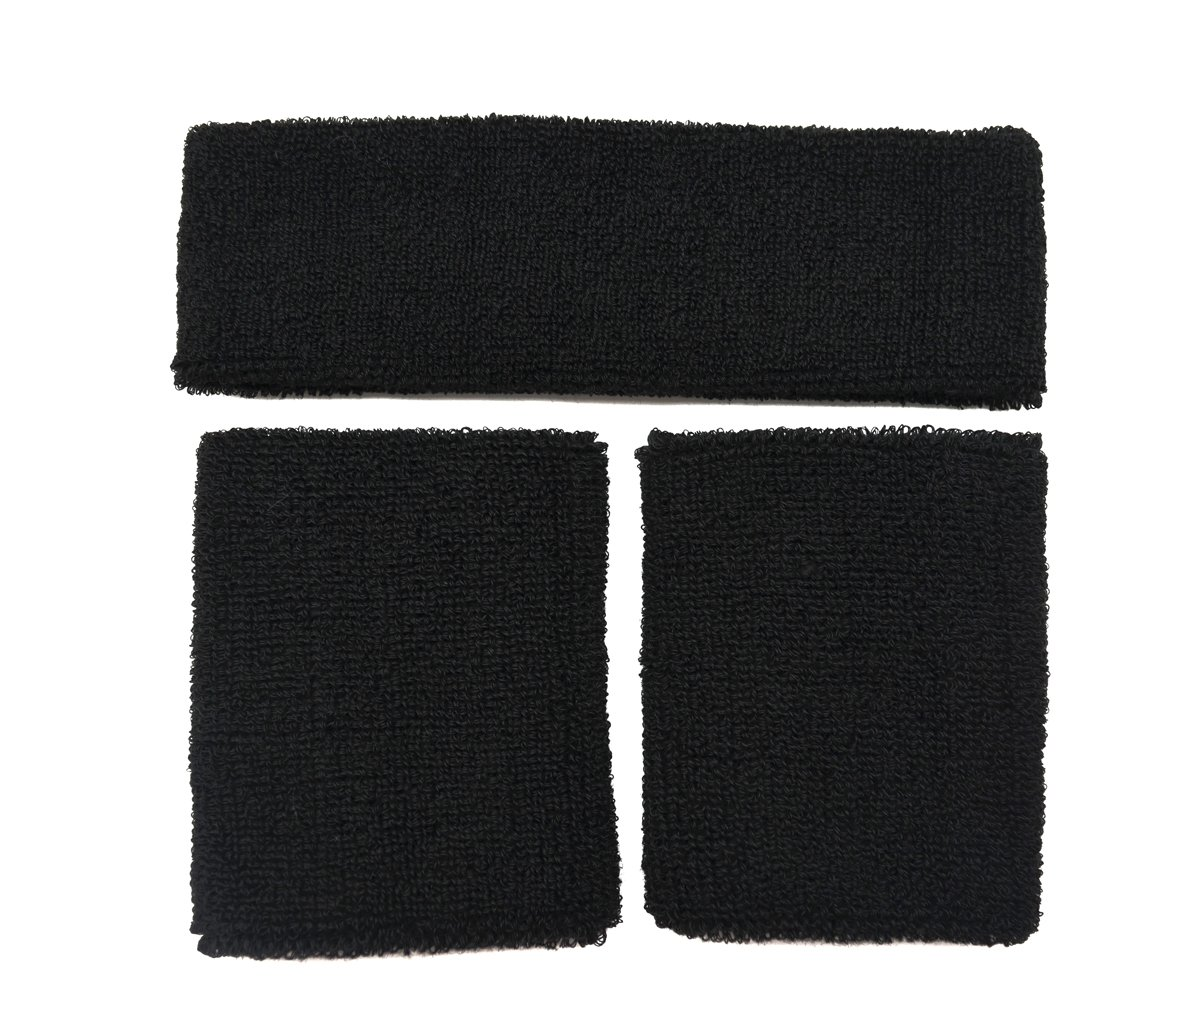 Meta-U Wholesale 5 Sets of Black Thicken Cotton Sports Sweatbands-1Set Including 1Pce of Headband & 2Pcs of Wristbands